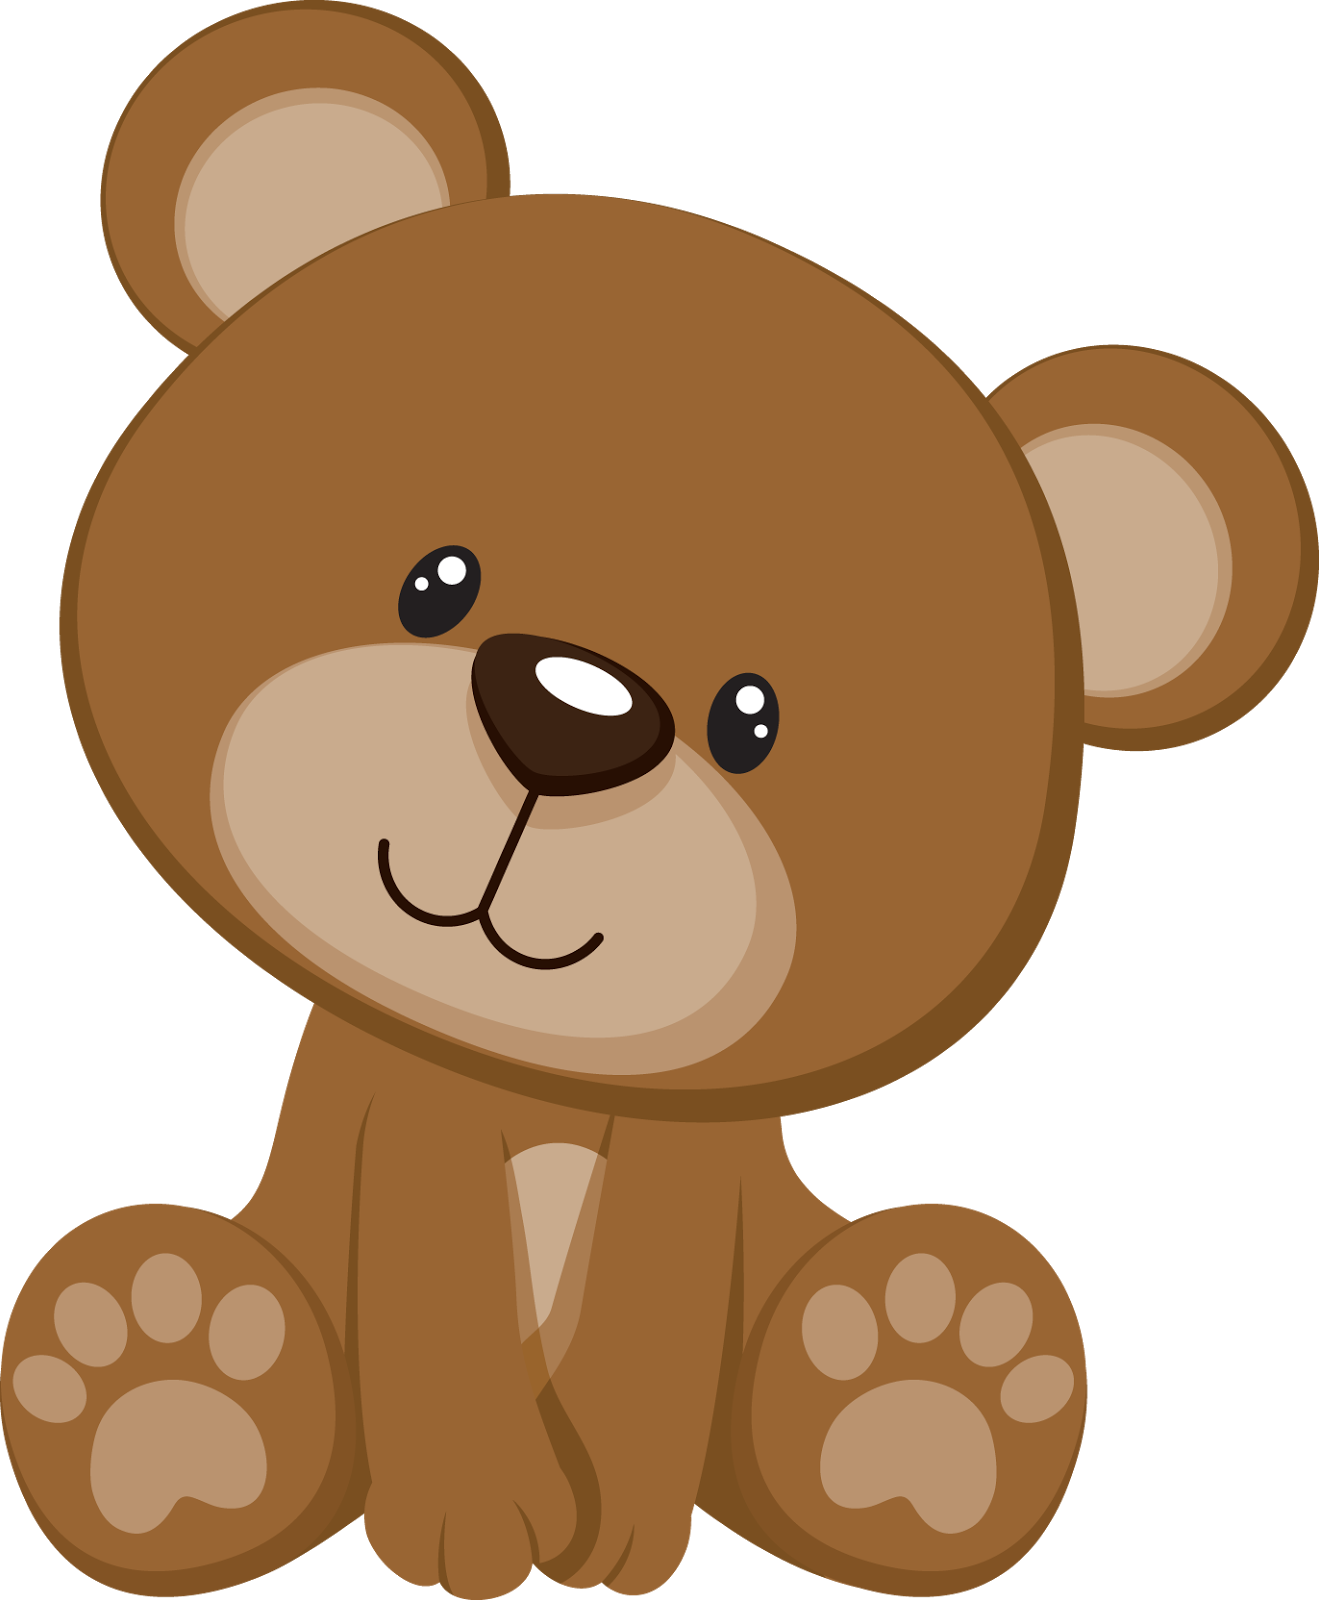 Bear Clipart For Kids at GetDrawings.com.